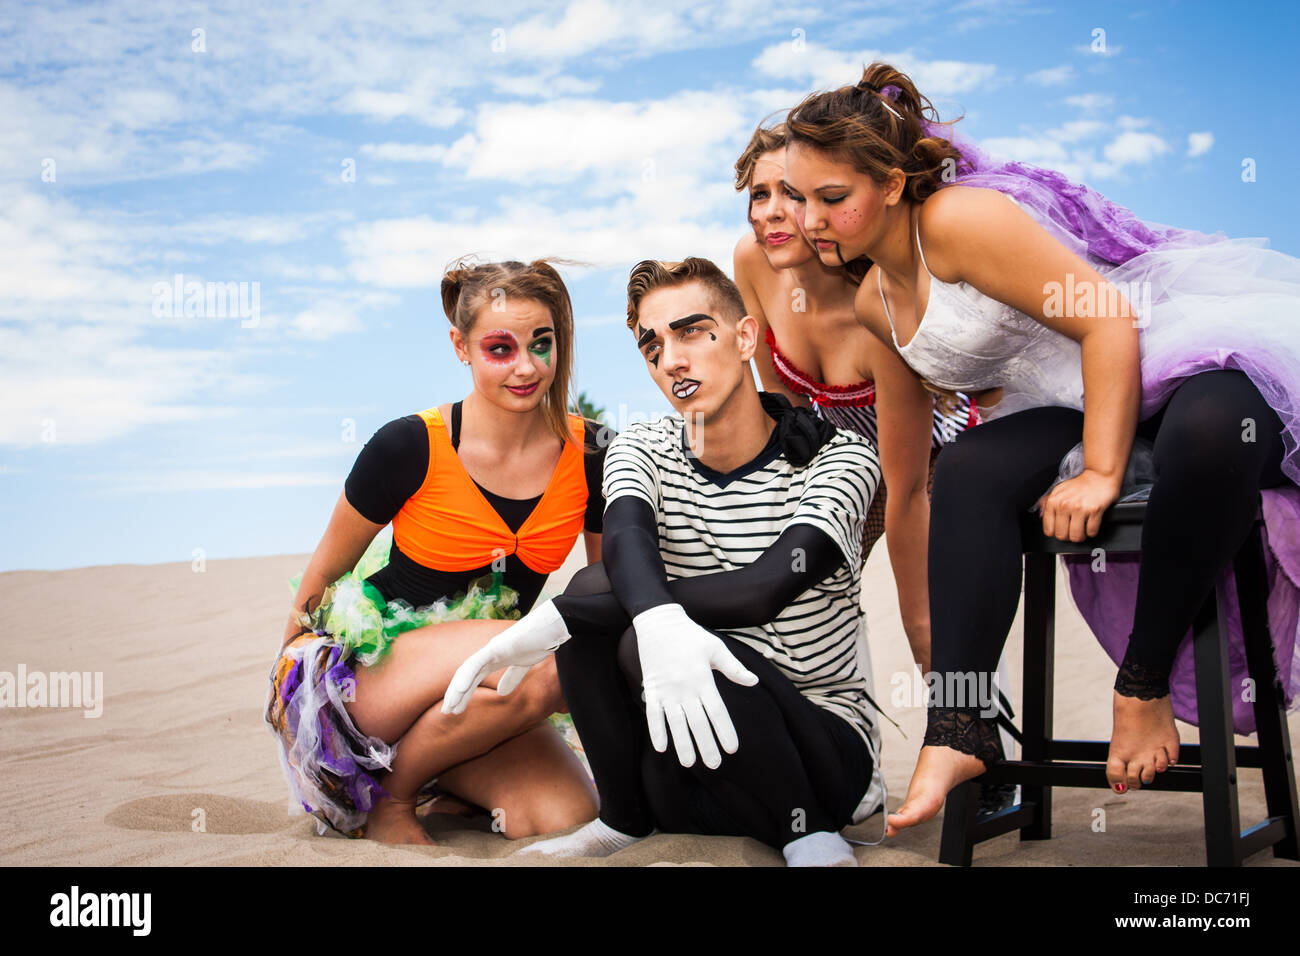 A sad and pensive young man surrounded by attentive young ladies - Stock Image